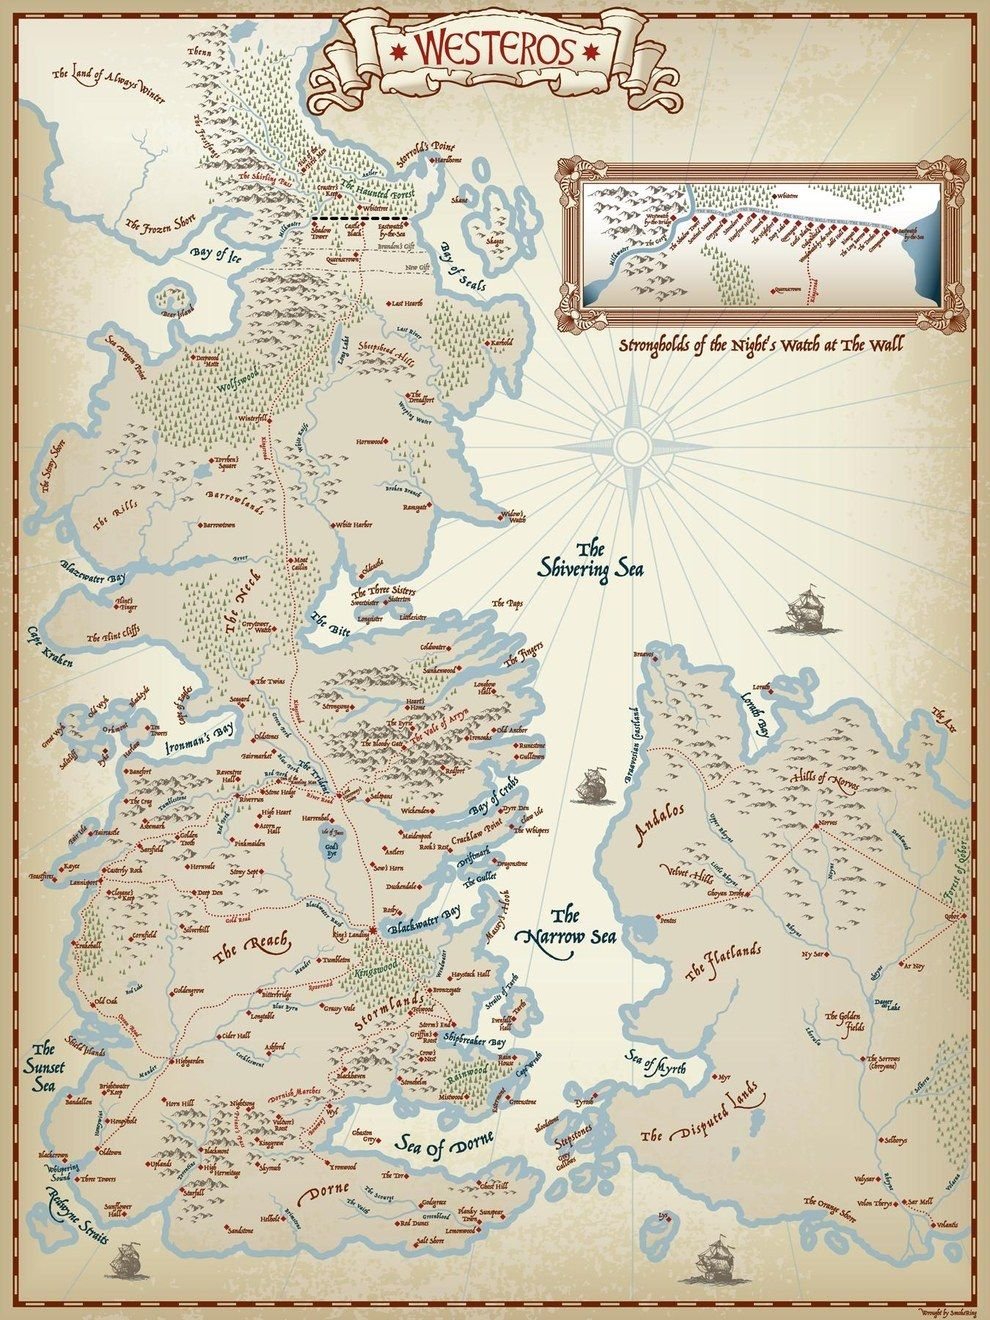 photo relating to Free Printable Map of Westeros named First of all, this incredibly refreshing, and straightforward map. Induce Im a nerd